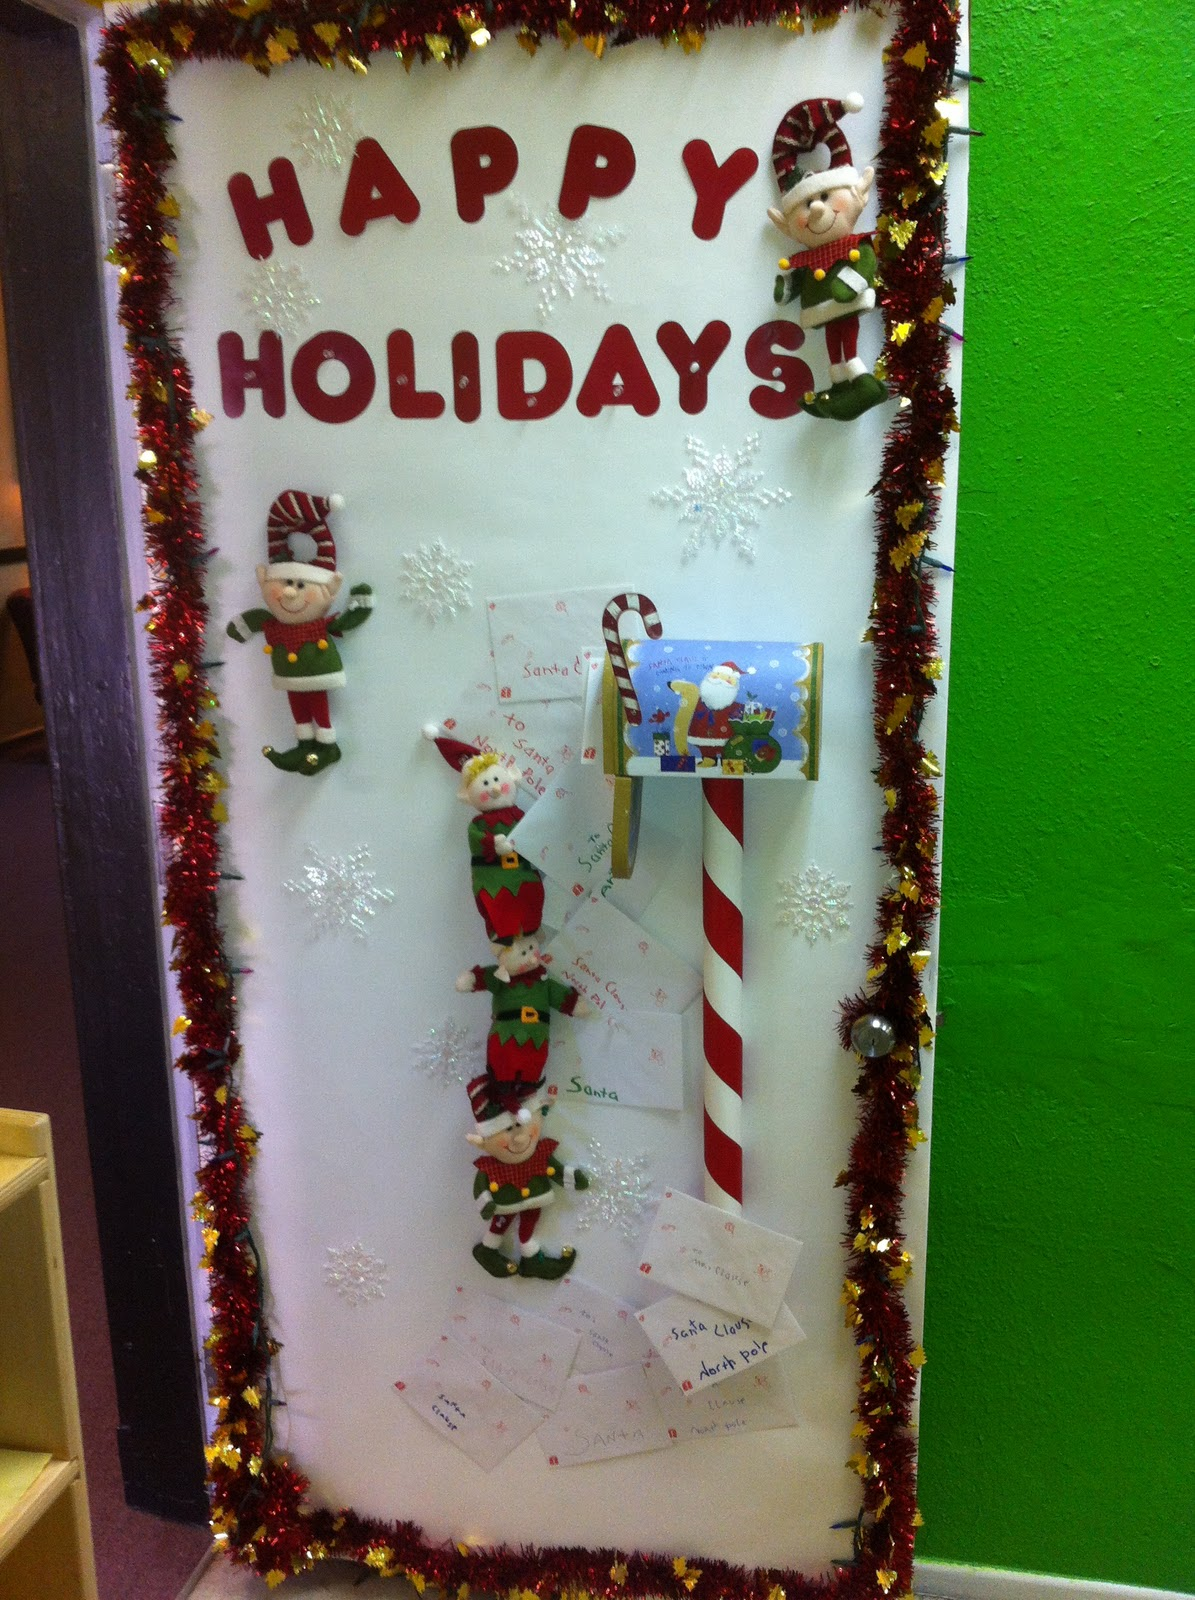 Office Door Decorating Contest Ideas http://charlattecreations.blogspot.com/2011/12/door-decorating-contest-ideas.html